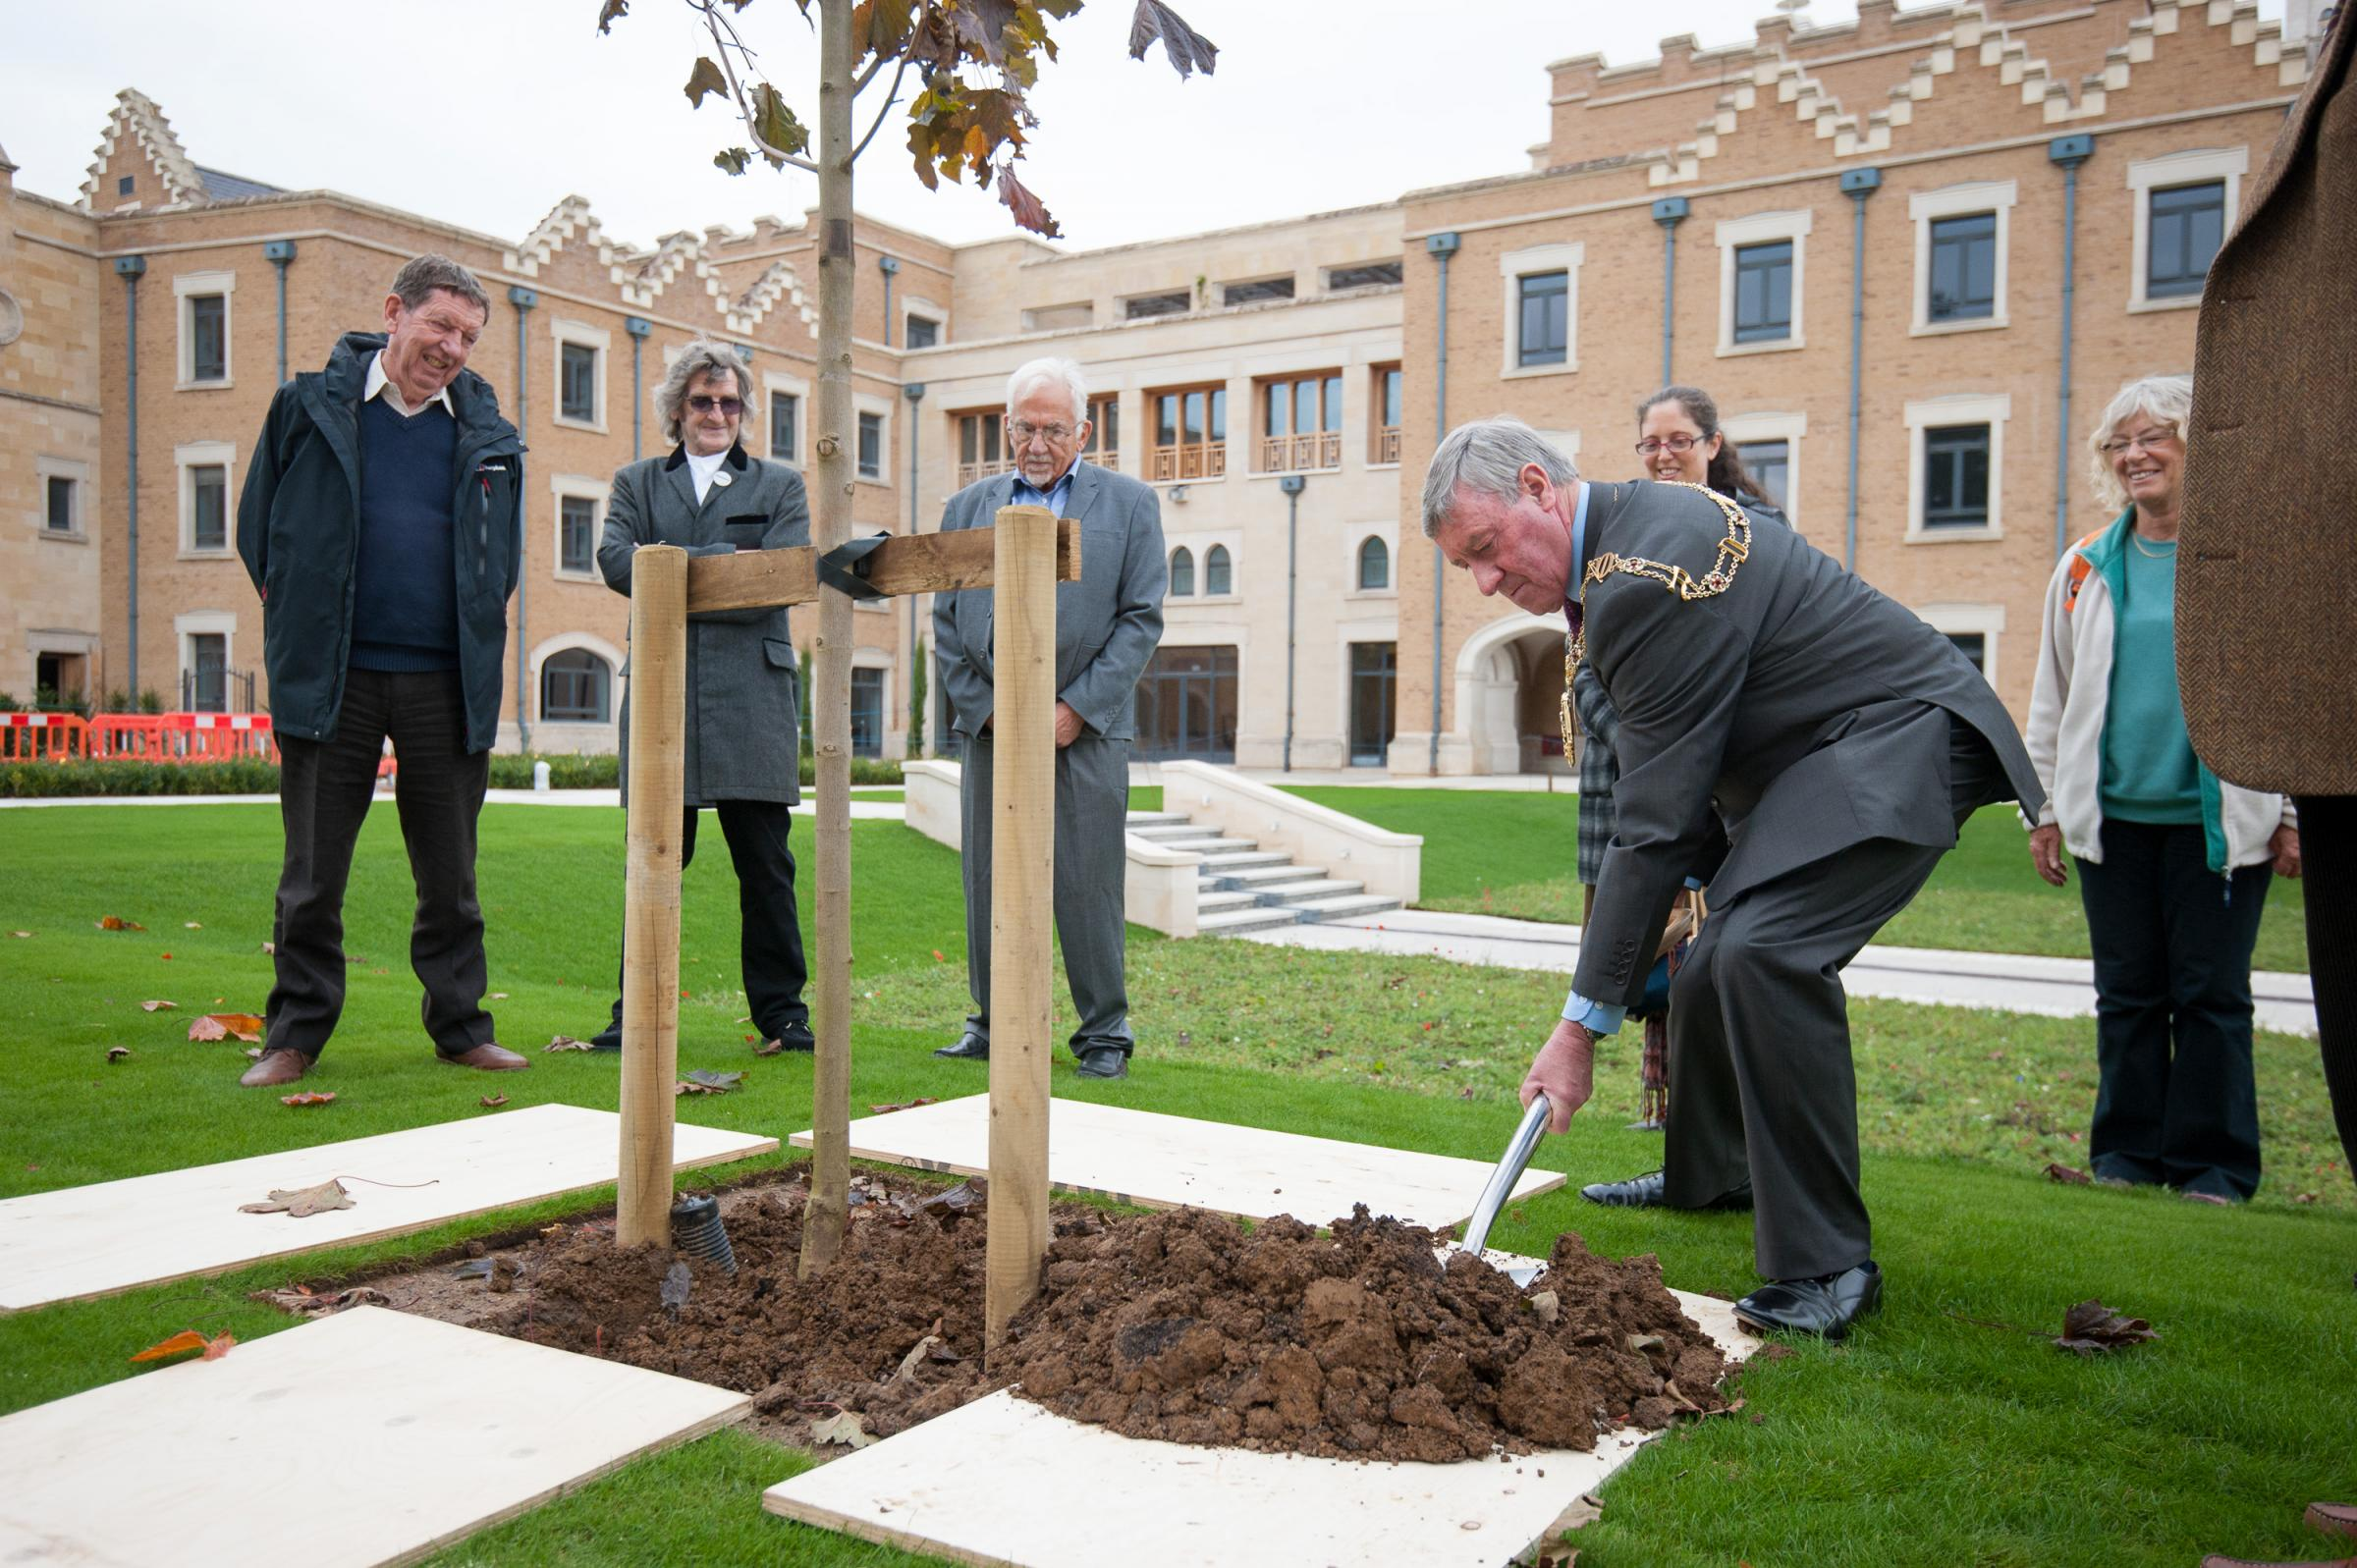 New life: Lord Mayor of Oxford Rae Humberstone plants a tree in the Prince of Wales Garden at the Oxford Centre for Islamic Studies before being given a tour of the building